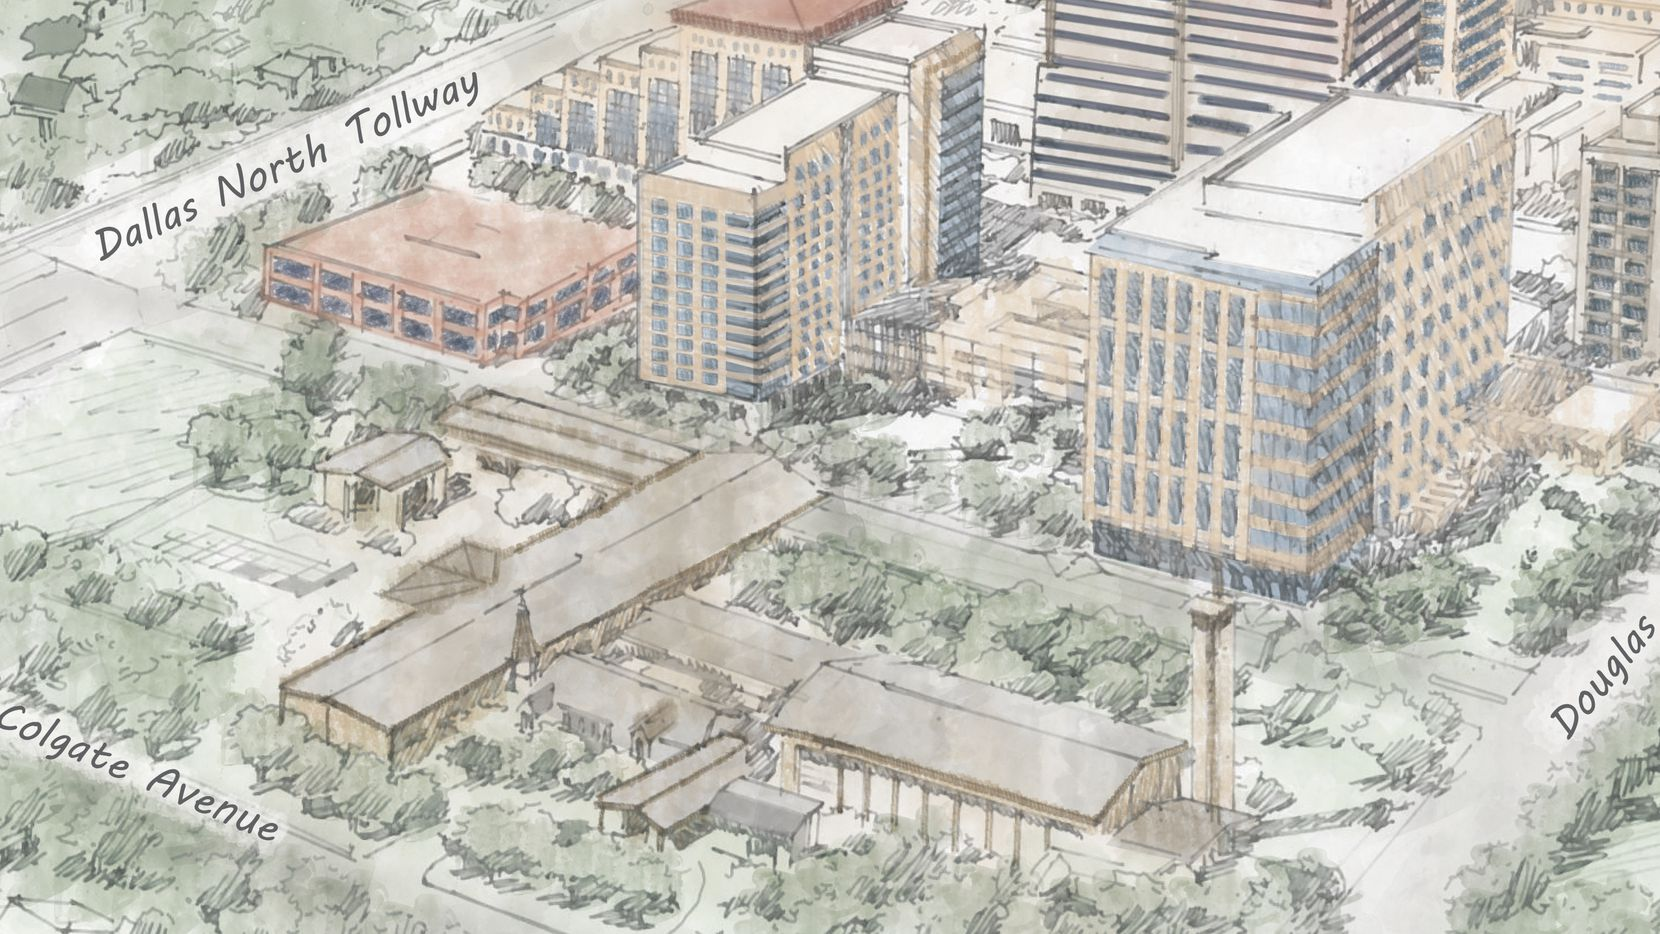 A new office building, center right, and a residential tower, on the left, are planned for the Saint Michael and All Angels Church project in Preston Center. The church is in the lower portion of the drawing at Colgate and Douglas.